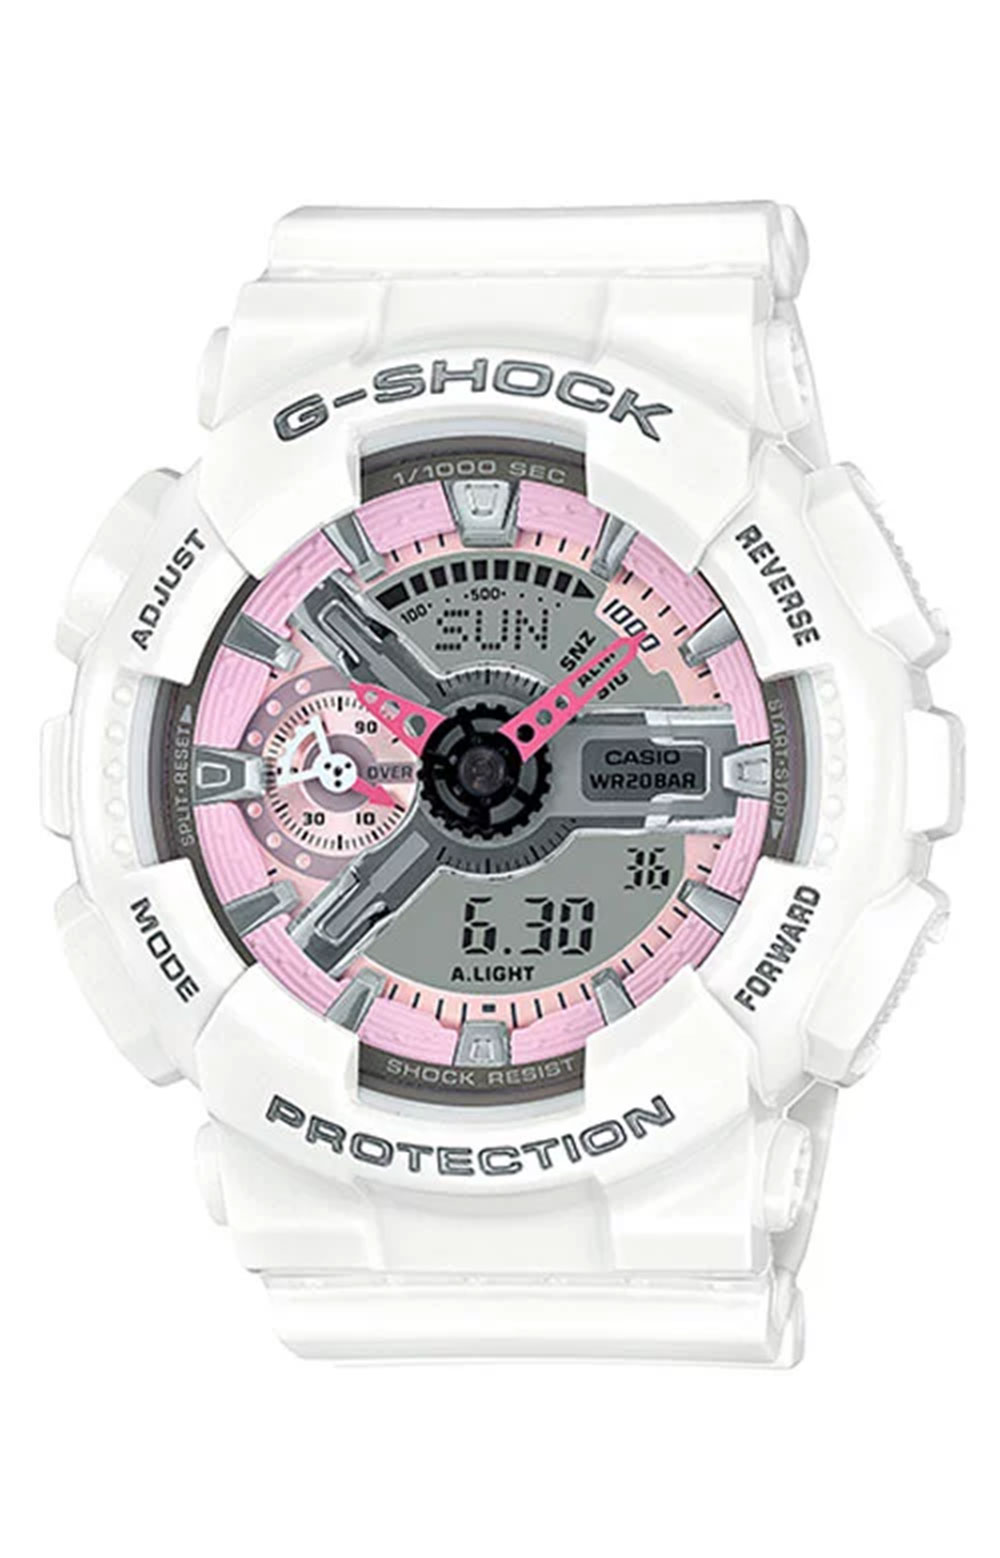 GMA-S110MP-7A S Series Watch - White/Pink